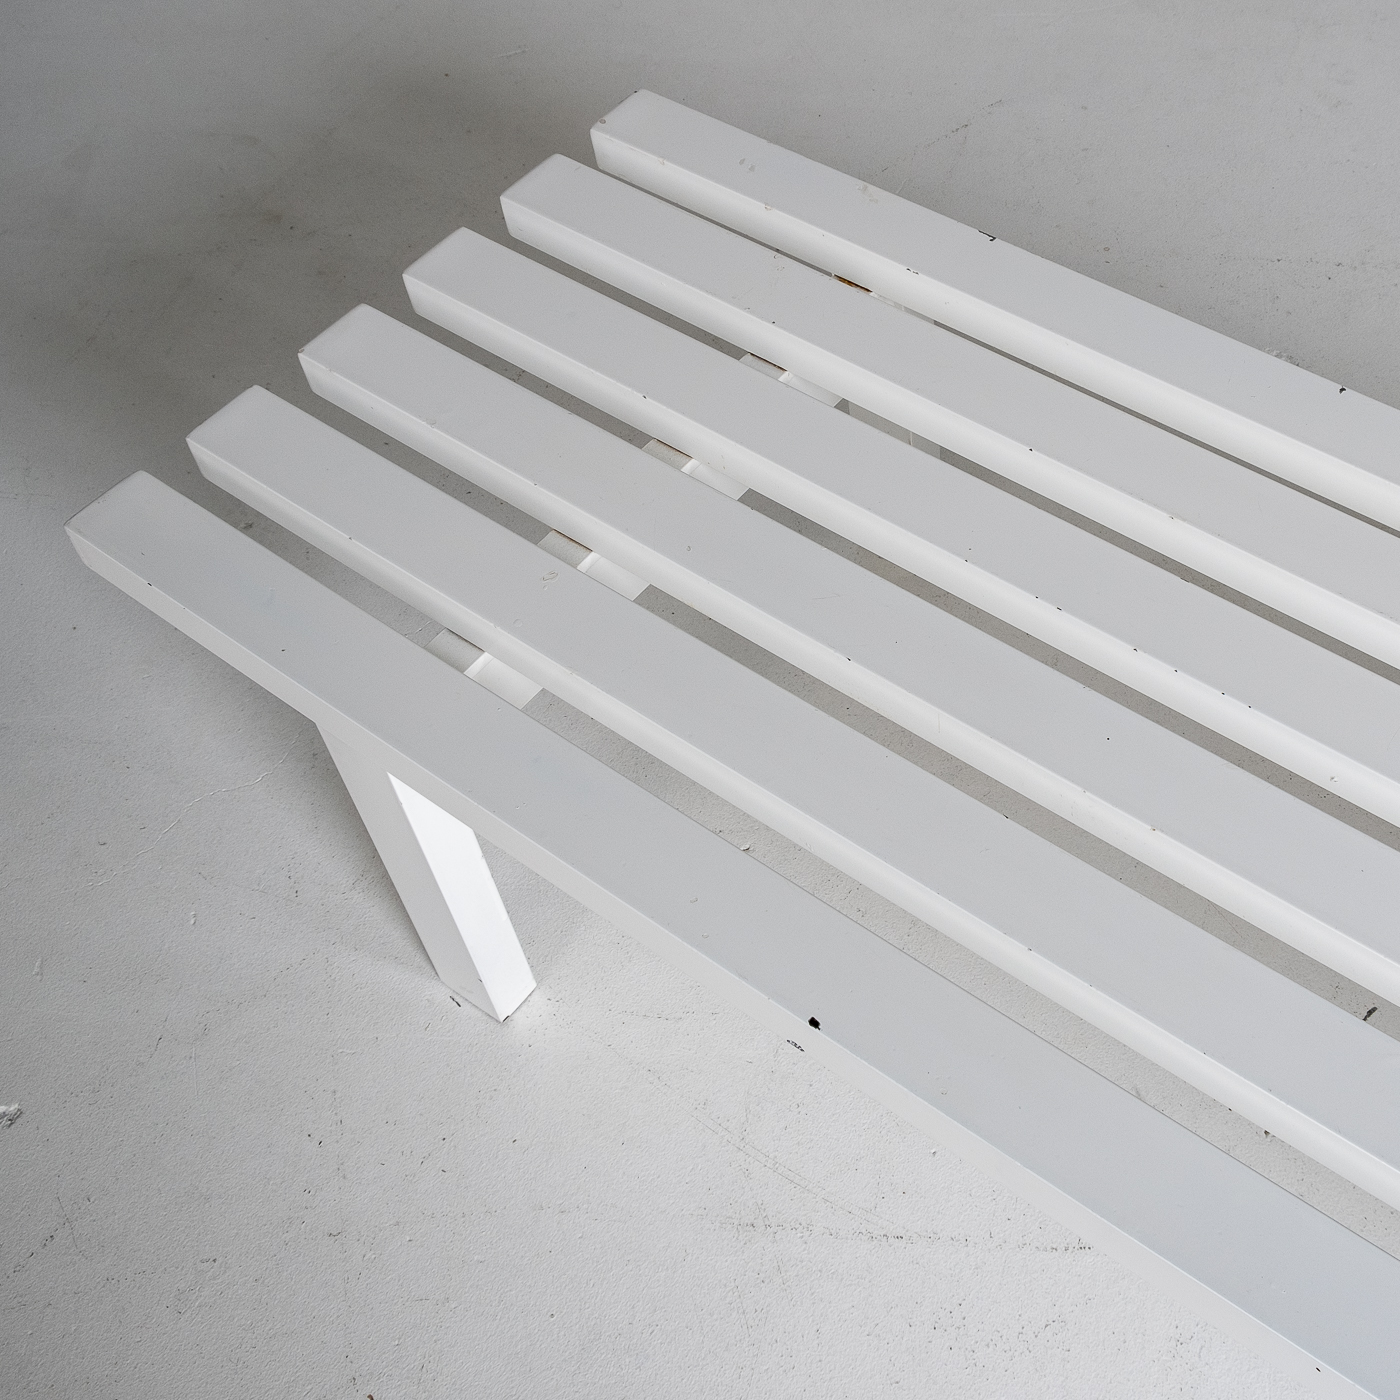 Bench In White Steel In The Style Of Metaform, 1970s, The Netherlands 8